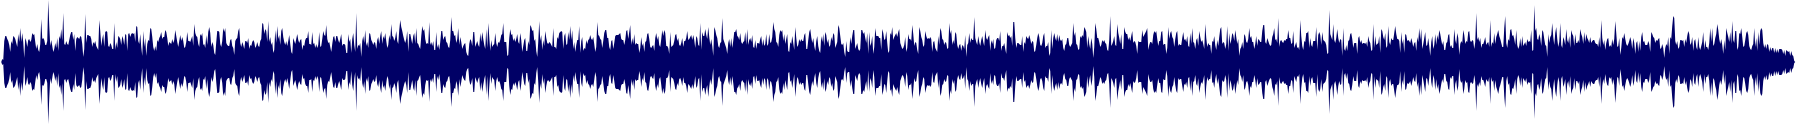 waveform of track #83323